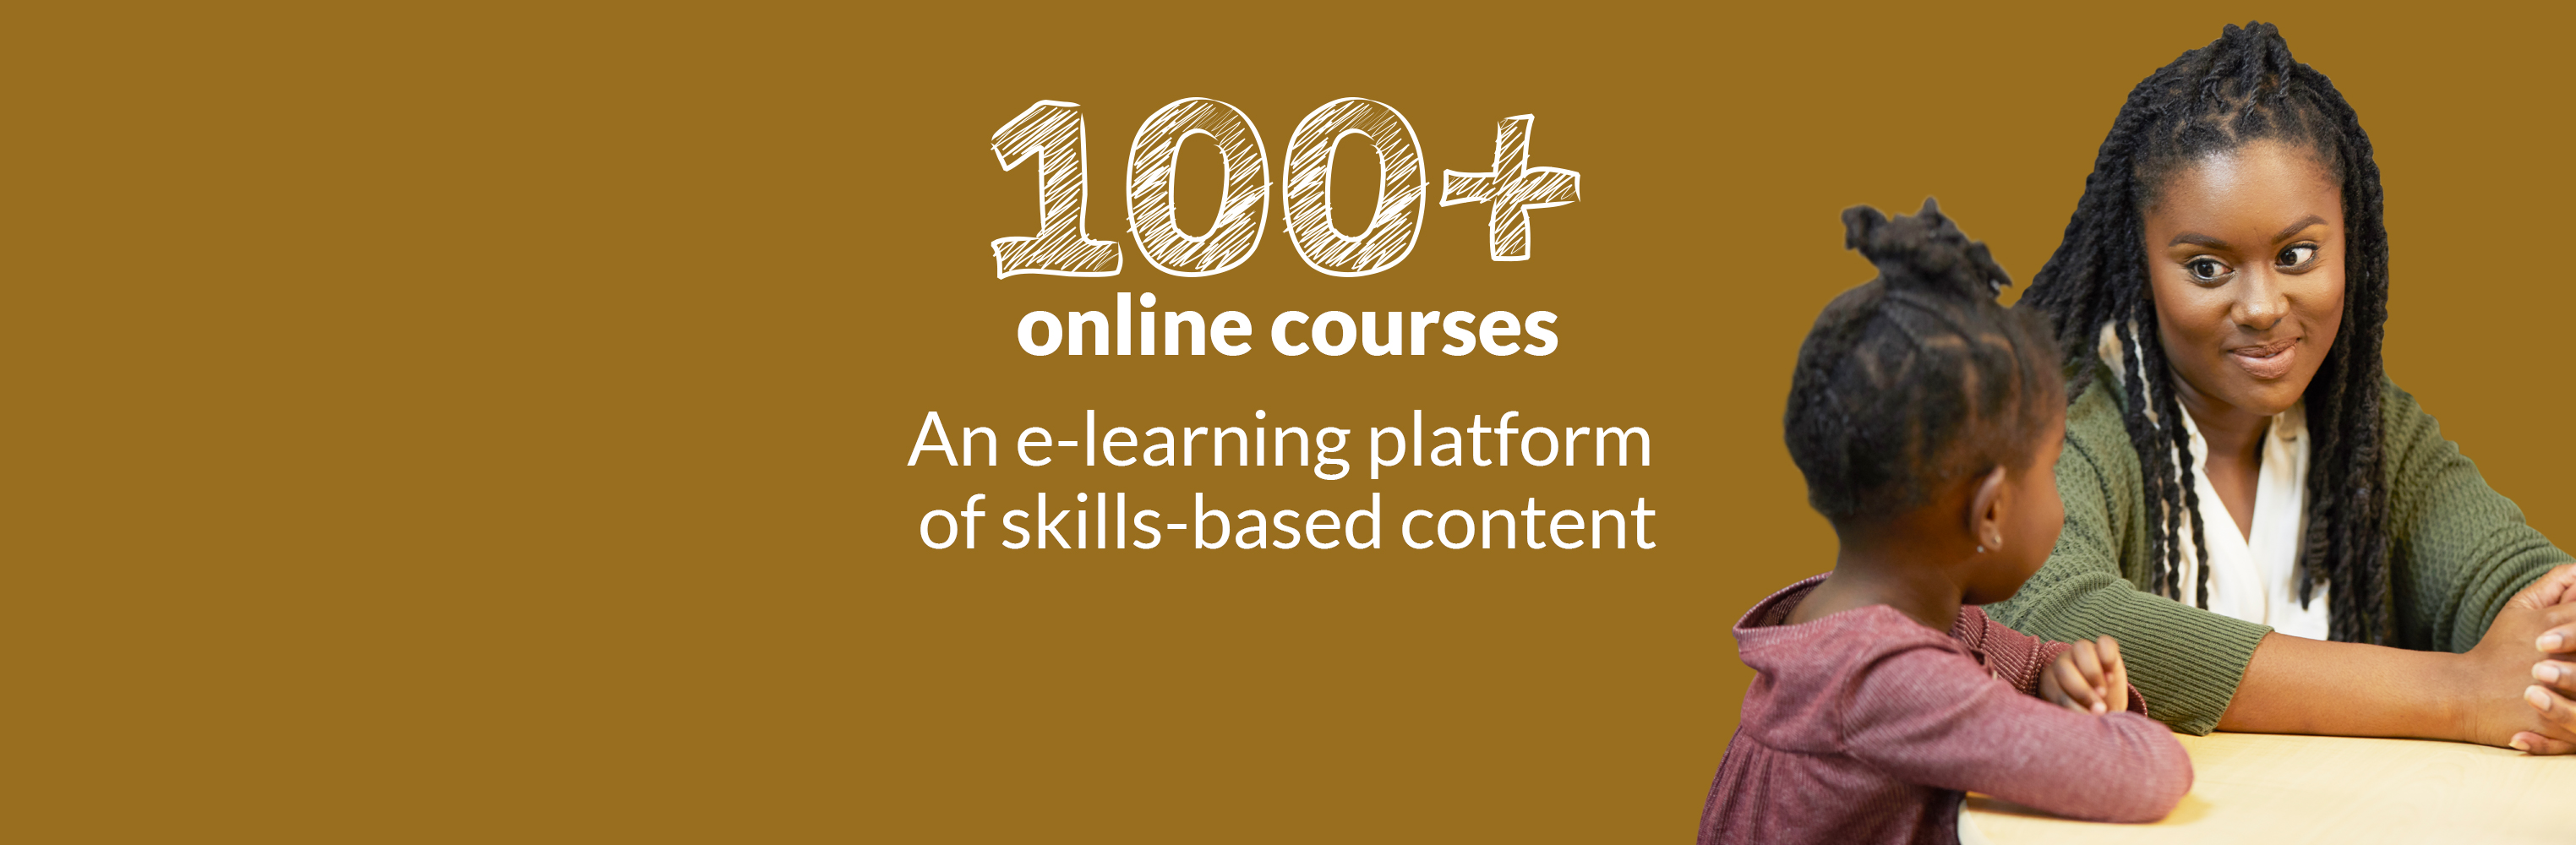 Online Courses for Every Budget